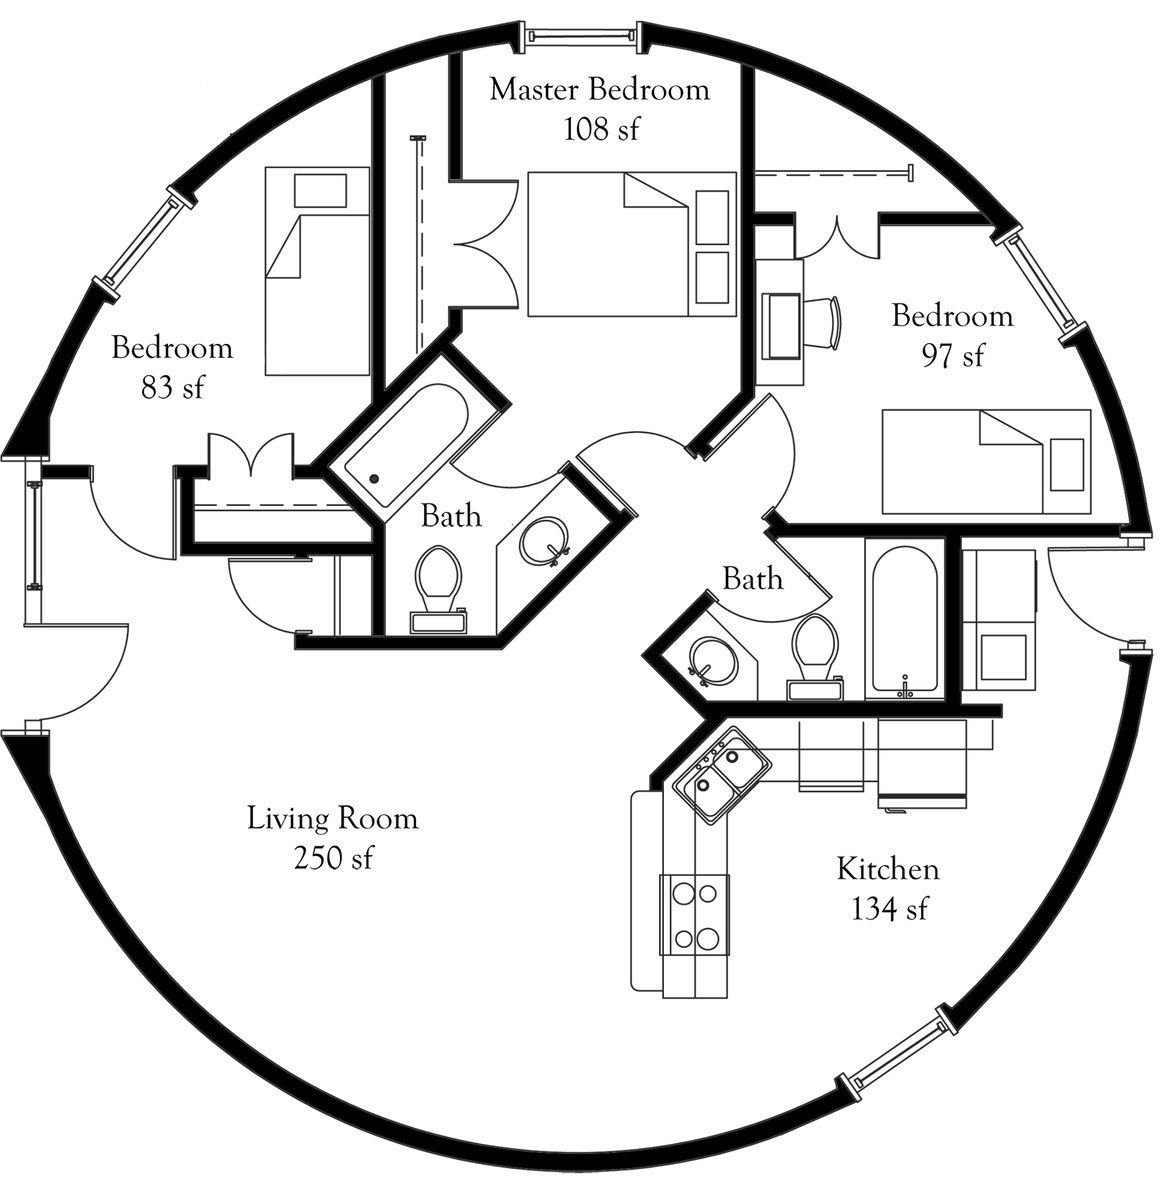 Ariel Ii Monolithic Dome Institute Round House Plans Monolithic Dome Homes Courtyard House Plans